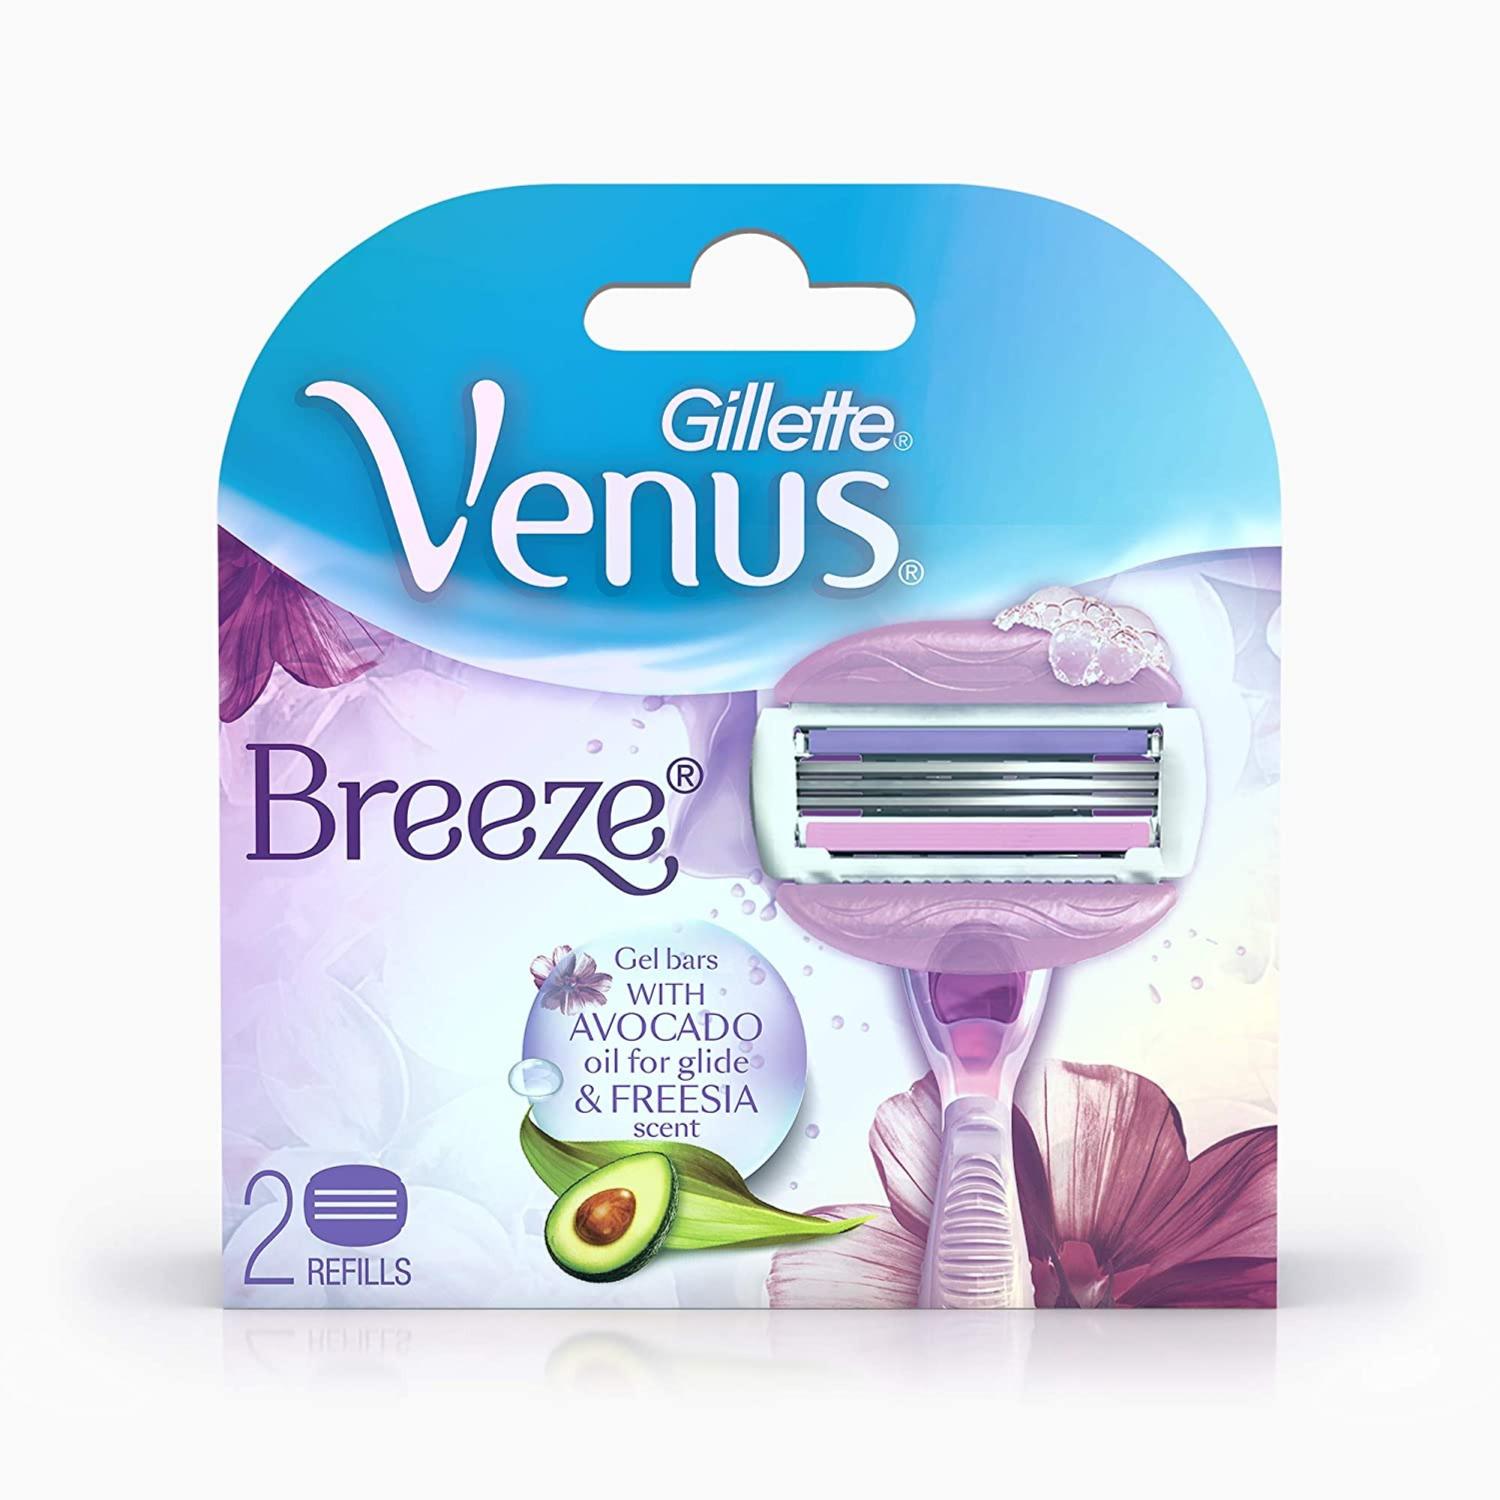 Buy Gillette Venus Breeze Hair Removal Razor Blades/Refills/Cartridges for Women - 2 Pieces (Avocado Oils & Body Butter) Online at Low Prices in India - Amazon.in